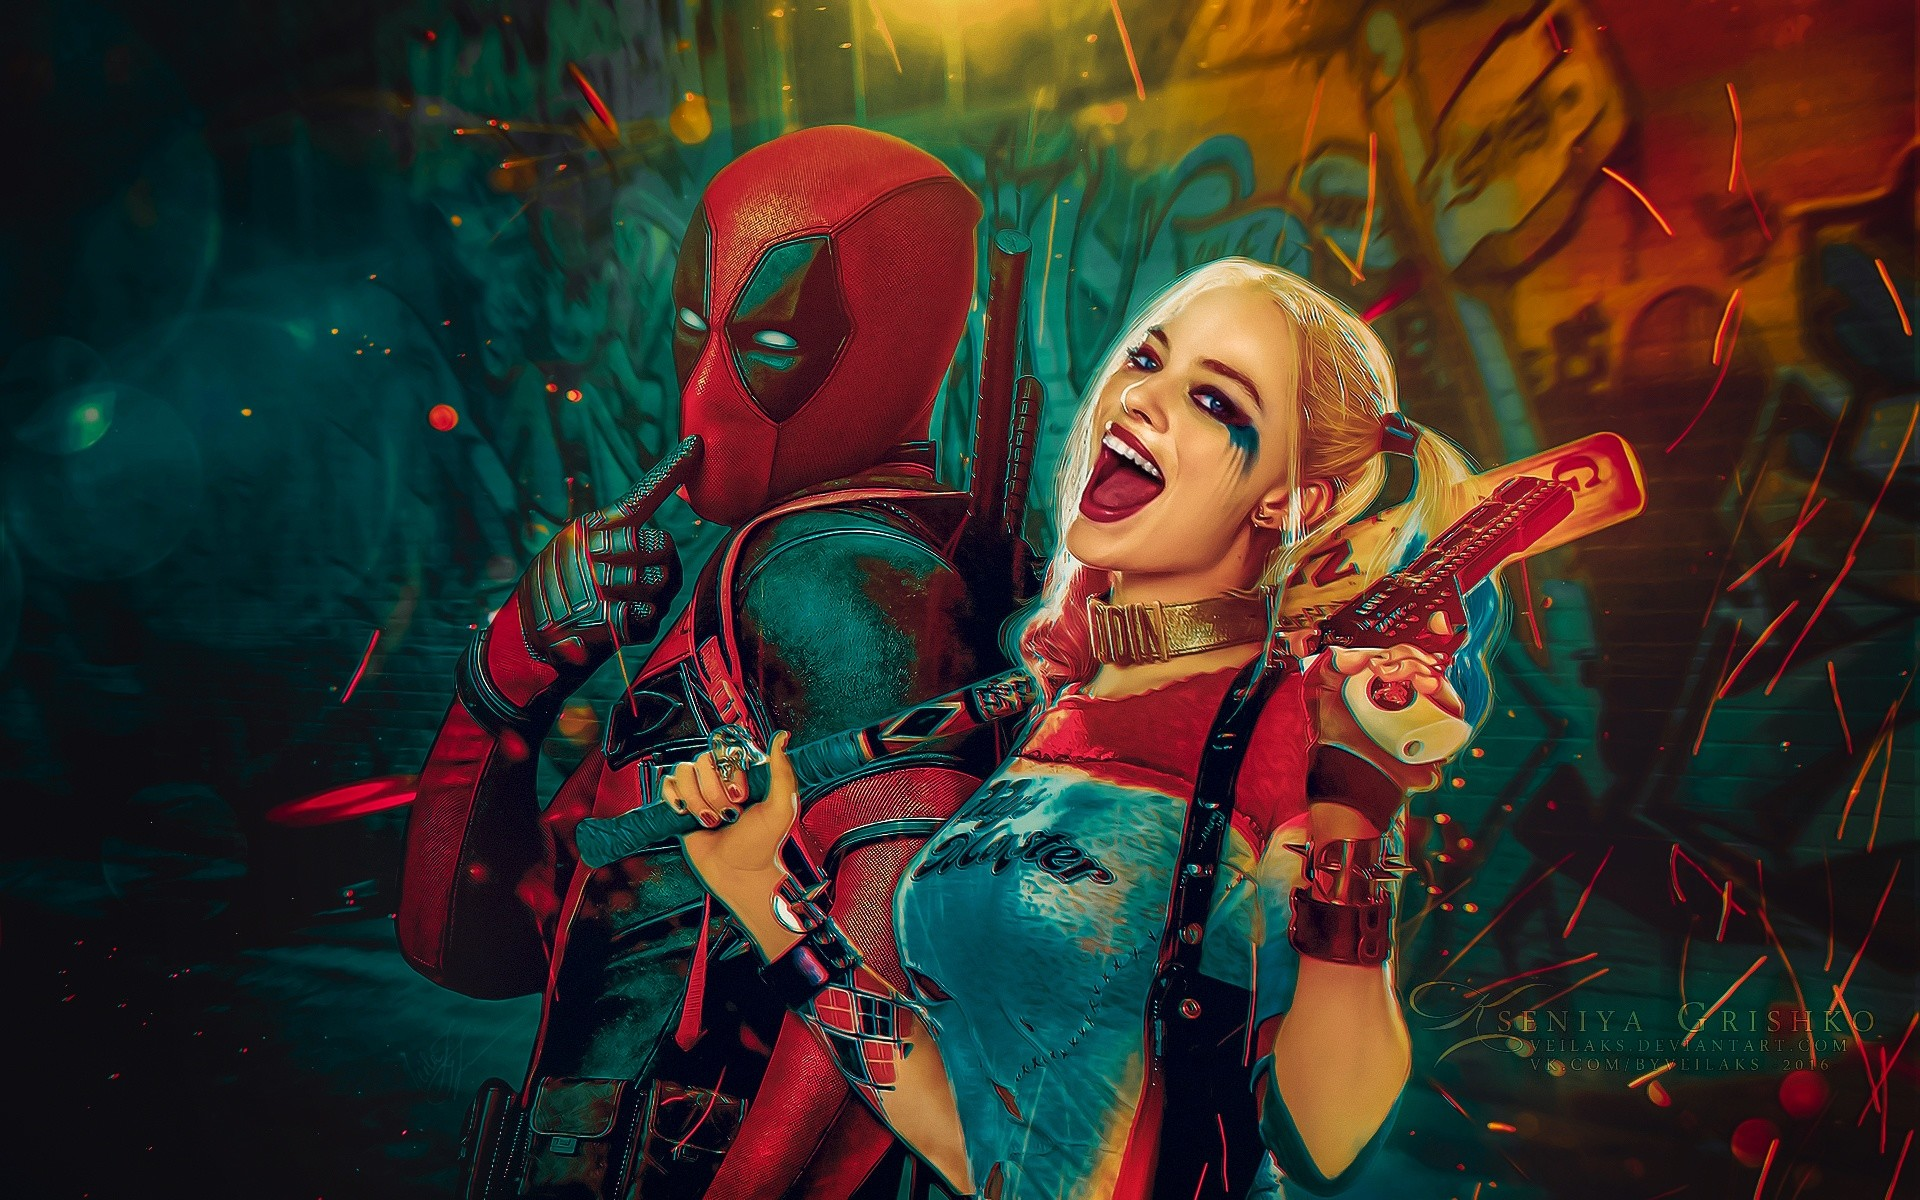 Harley Quinn Suicide Squad Wallpapers 72+ images